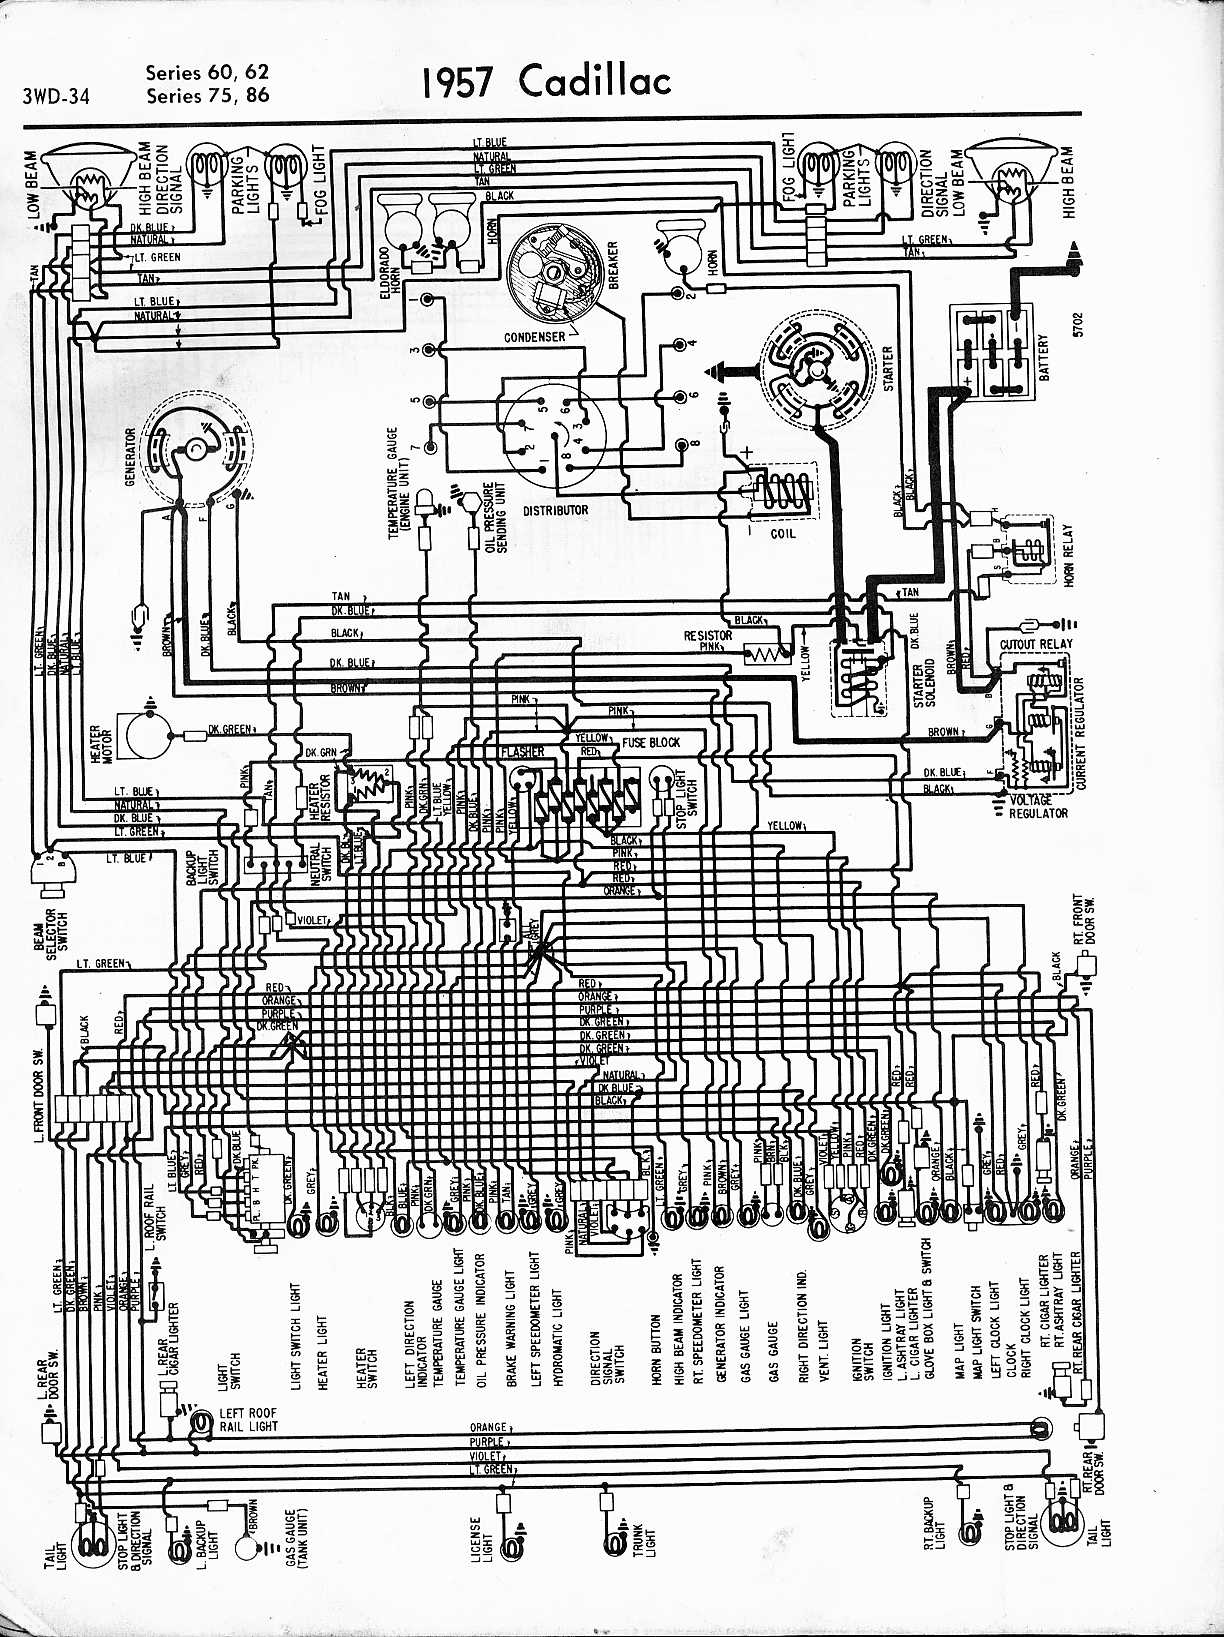 65 Cadillac Wiring Schematic The Portal And Forum Of Diagram For 2005 Cts Diagrams 1957 1965 Rh Oldcarmanualproject Com 1948 Schematics 1993 Allante Fuses